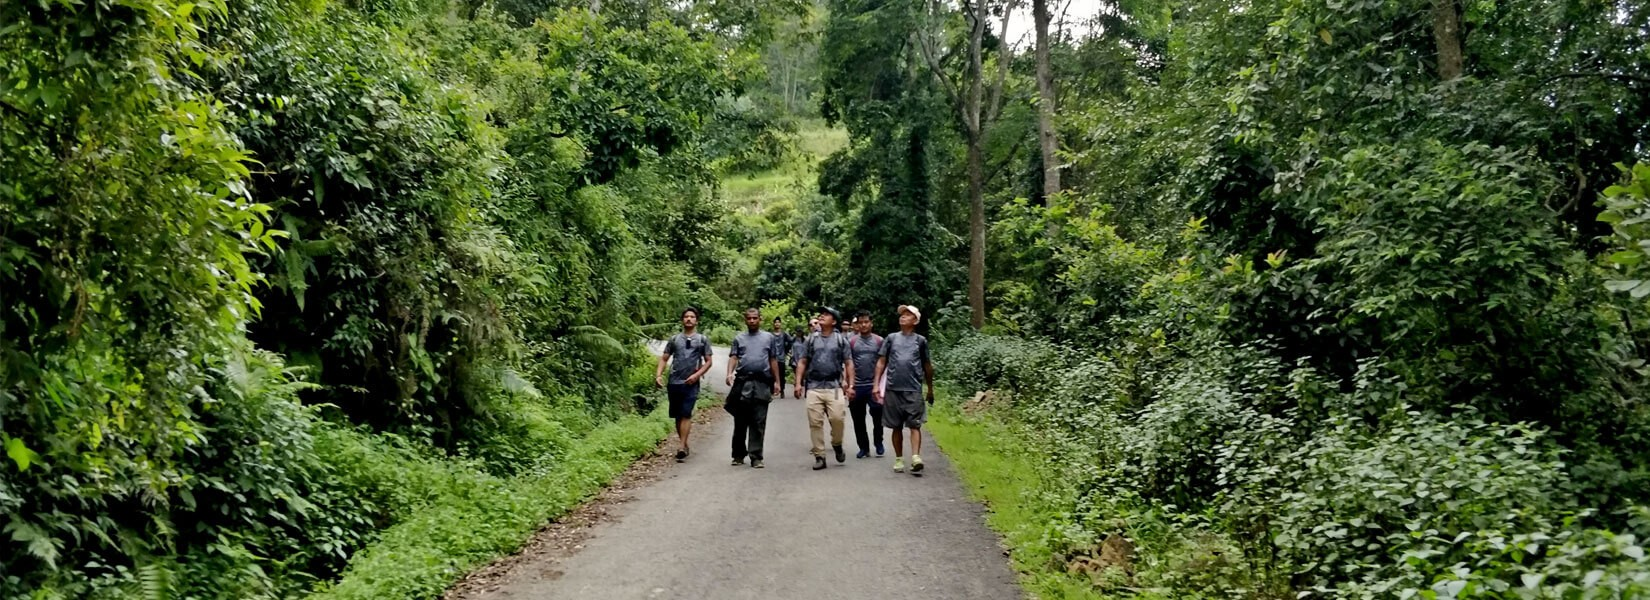 Nagarkot Hiking 2 Days